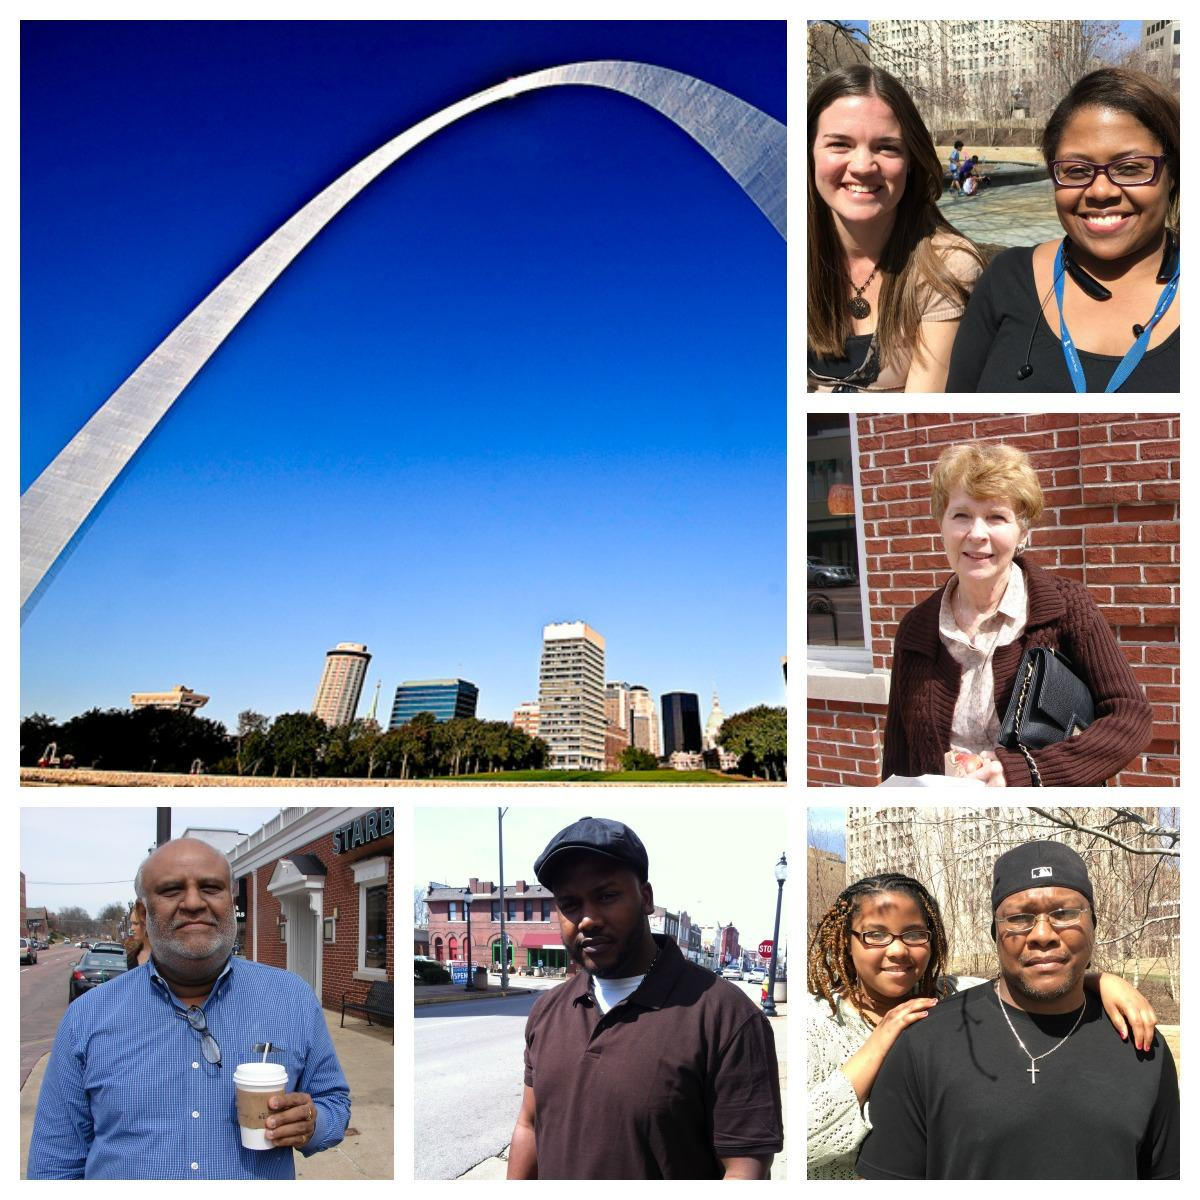 Image: From bottom left: St. Louis area residents Bala Anant, Will Johnson, Derrick Hopgood and his daughter Skylyn. Anne Cody, Lisa Heimberger and Brandy Bold.(Photo of Gateway Arch from  Francisco Diez   Flickr ; Additional photos from Joseph Leahy and Kaitlyn Petrin   St. Louis Public Radio)